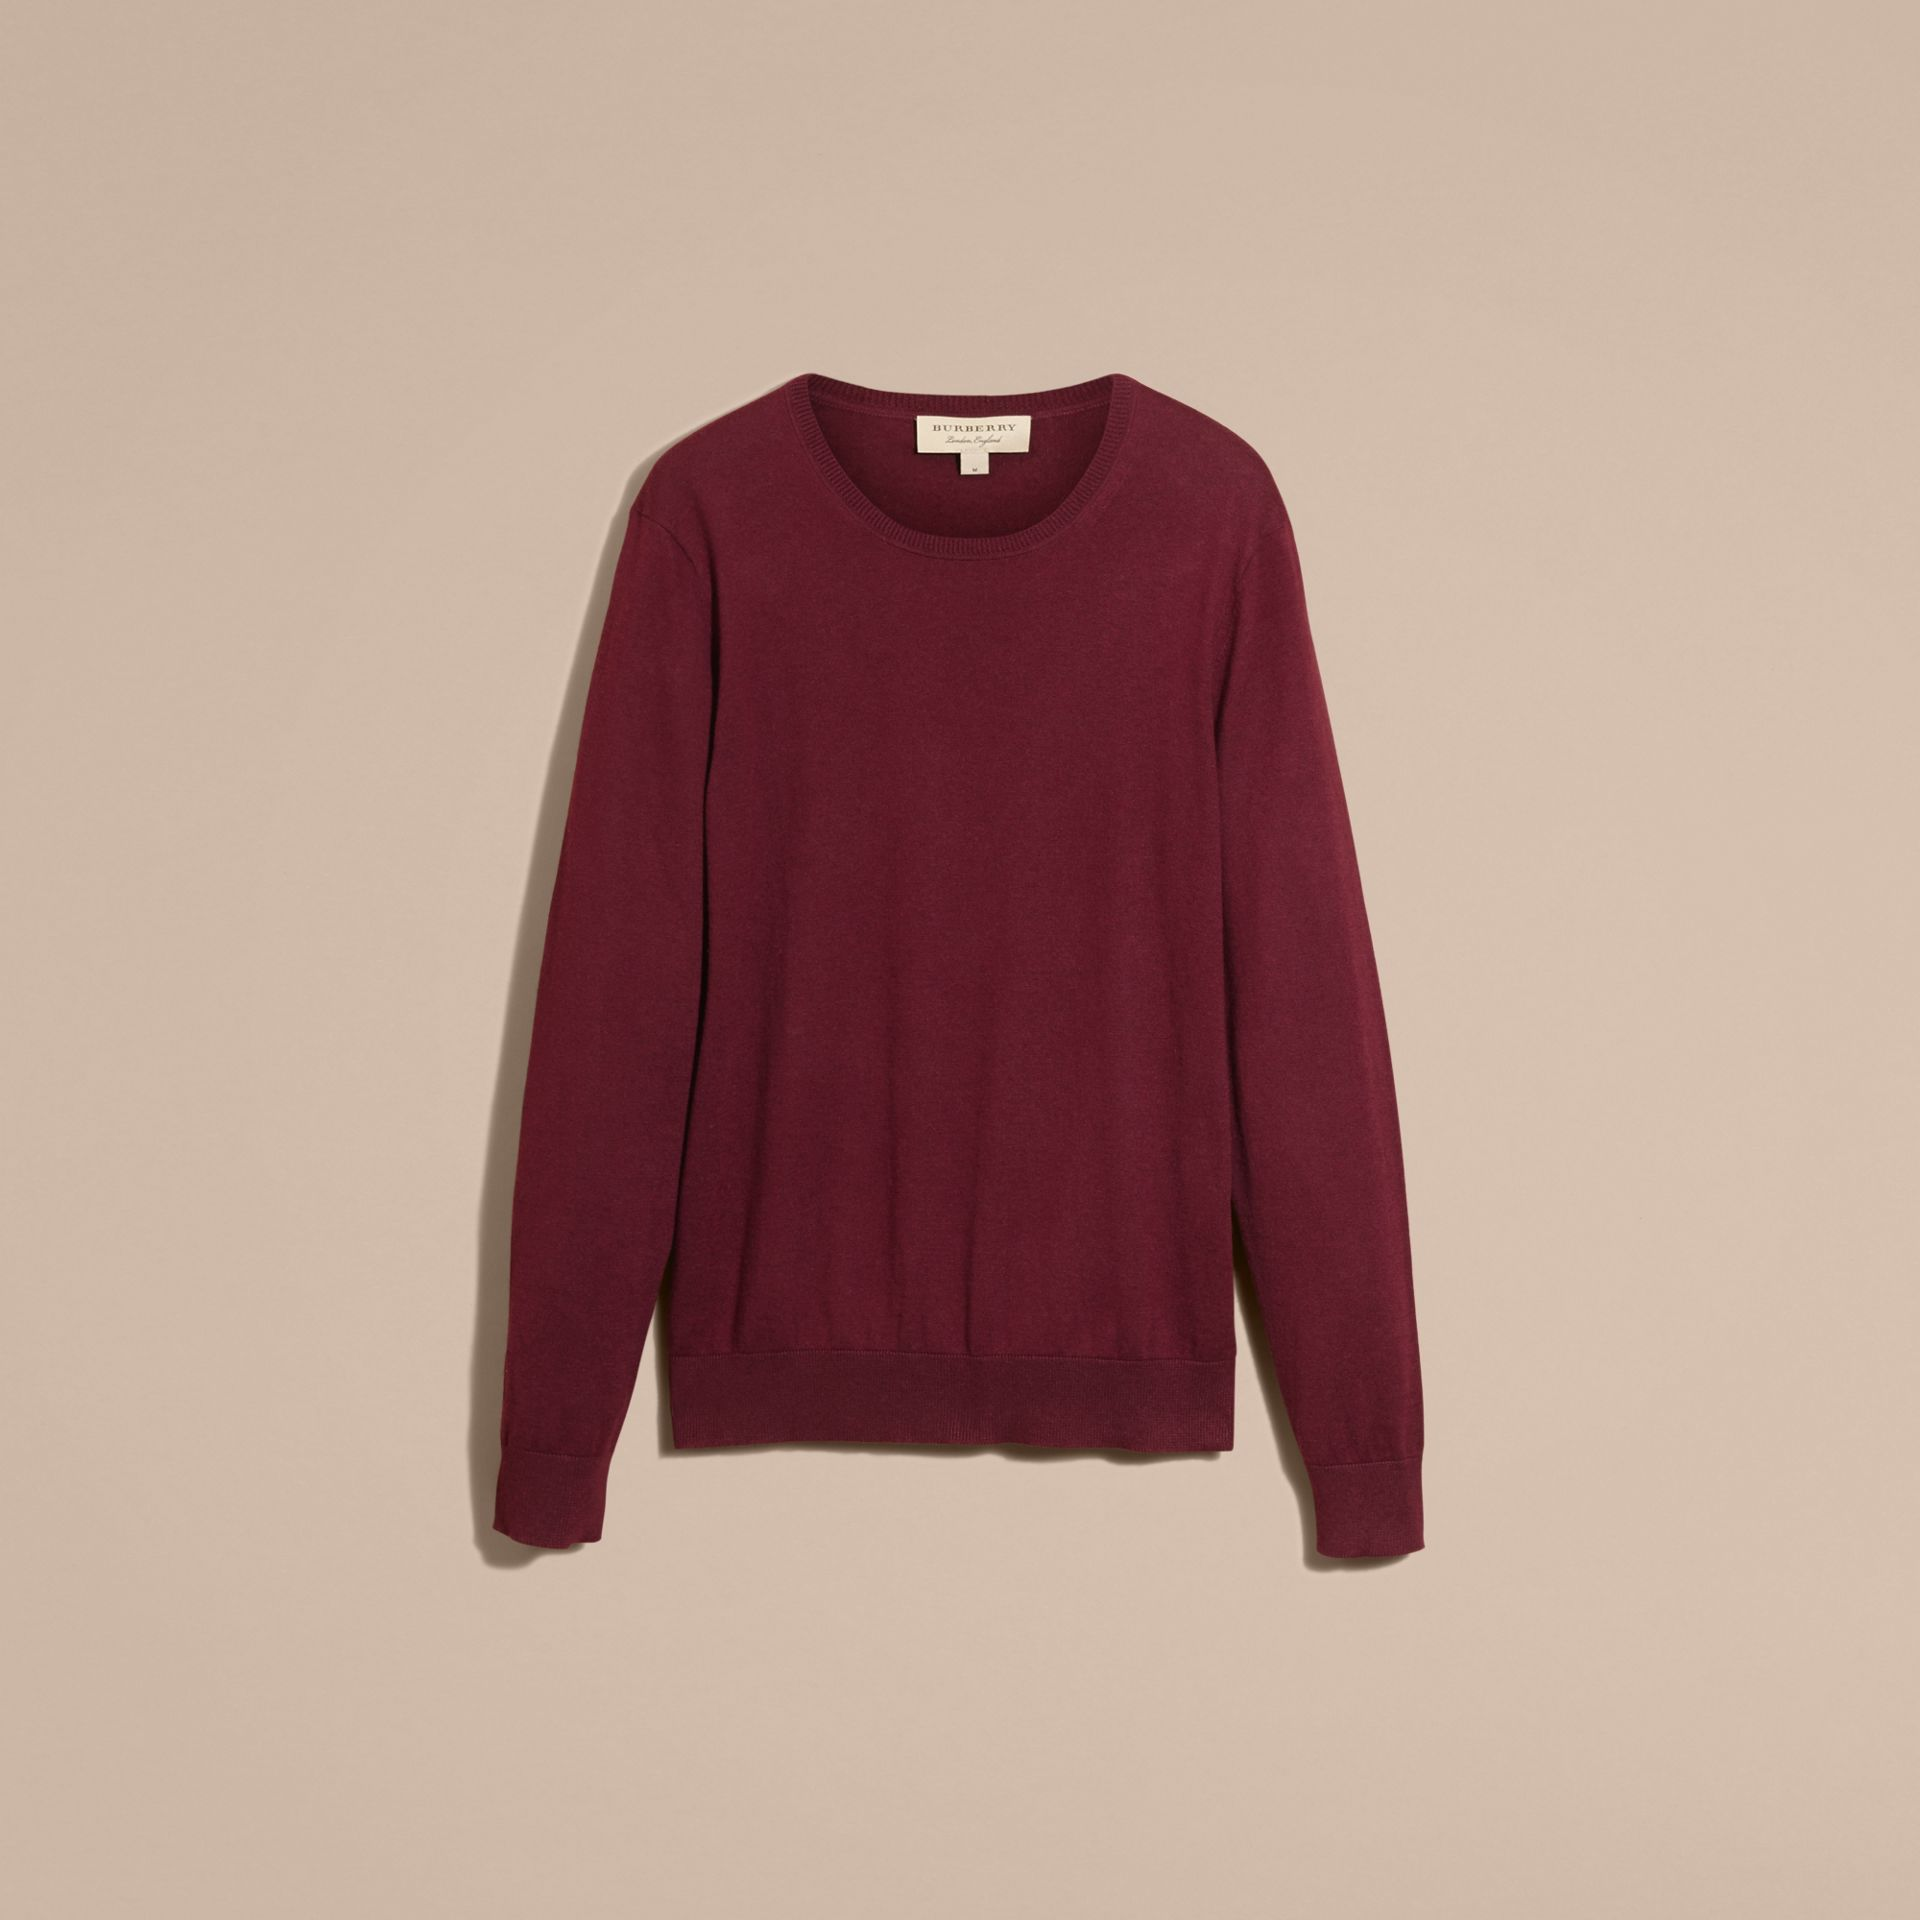 Claret Check Trim Cashmere Cotton Sweater Claret - gallery image 4